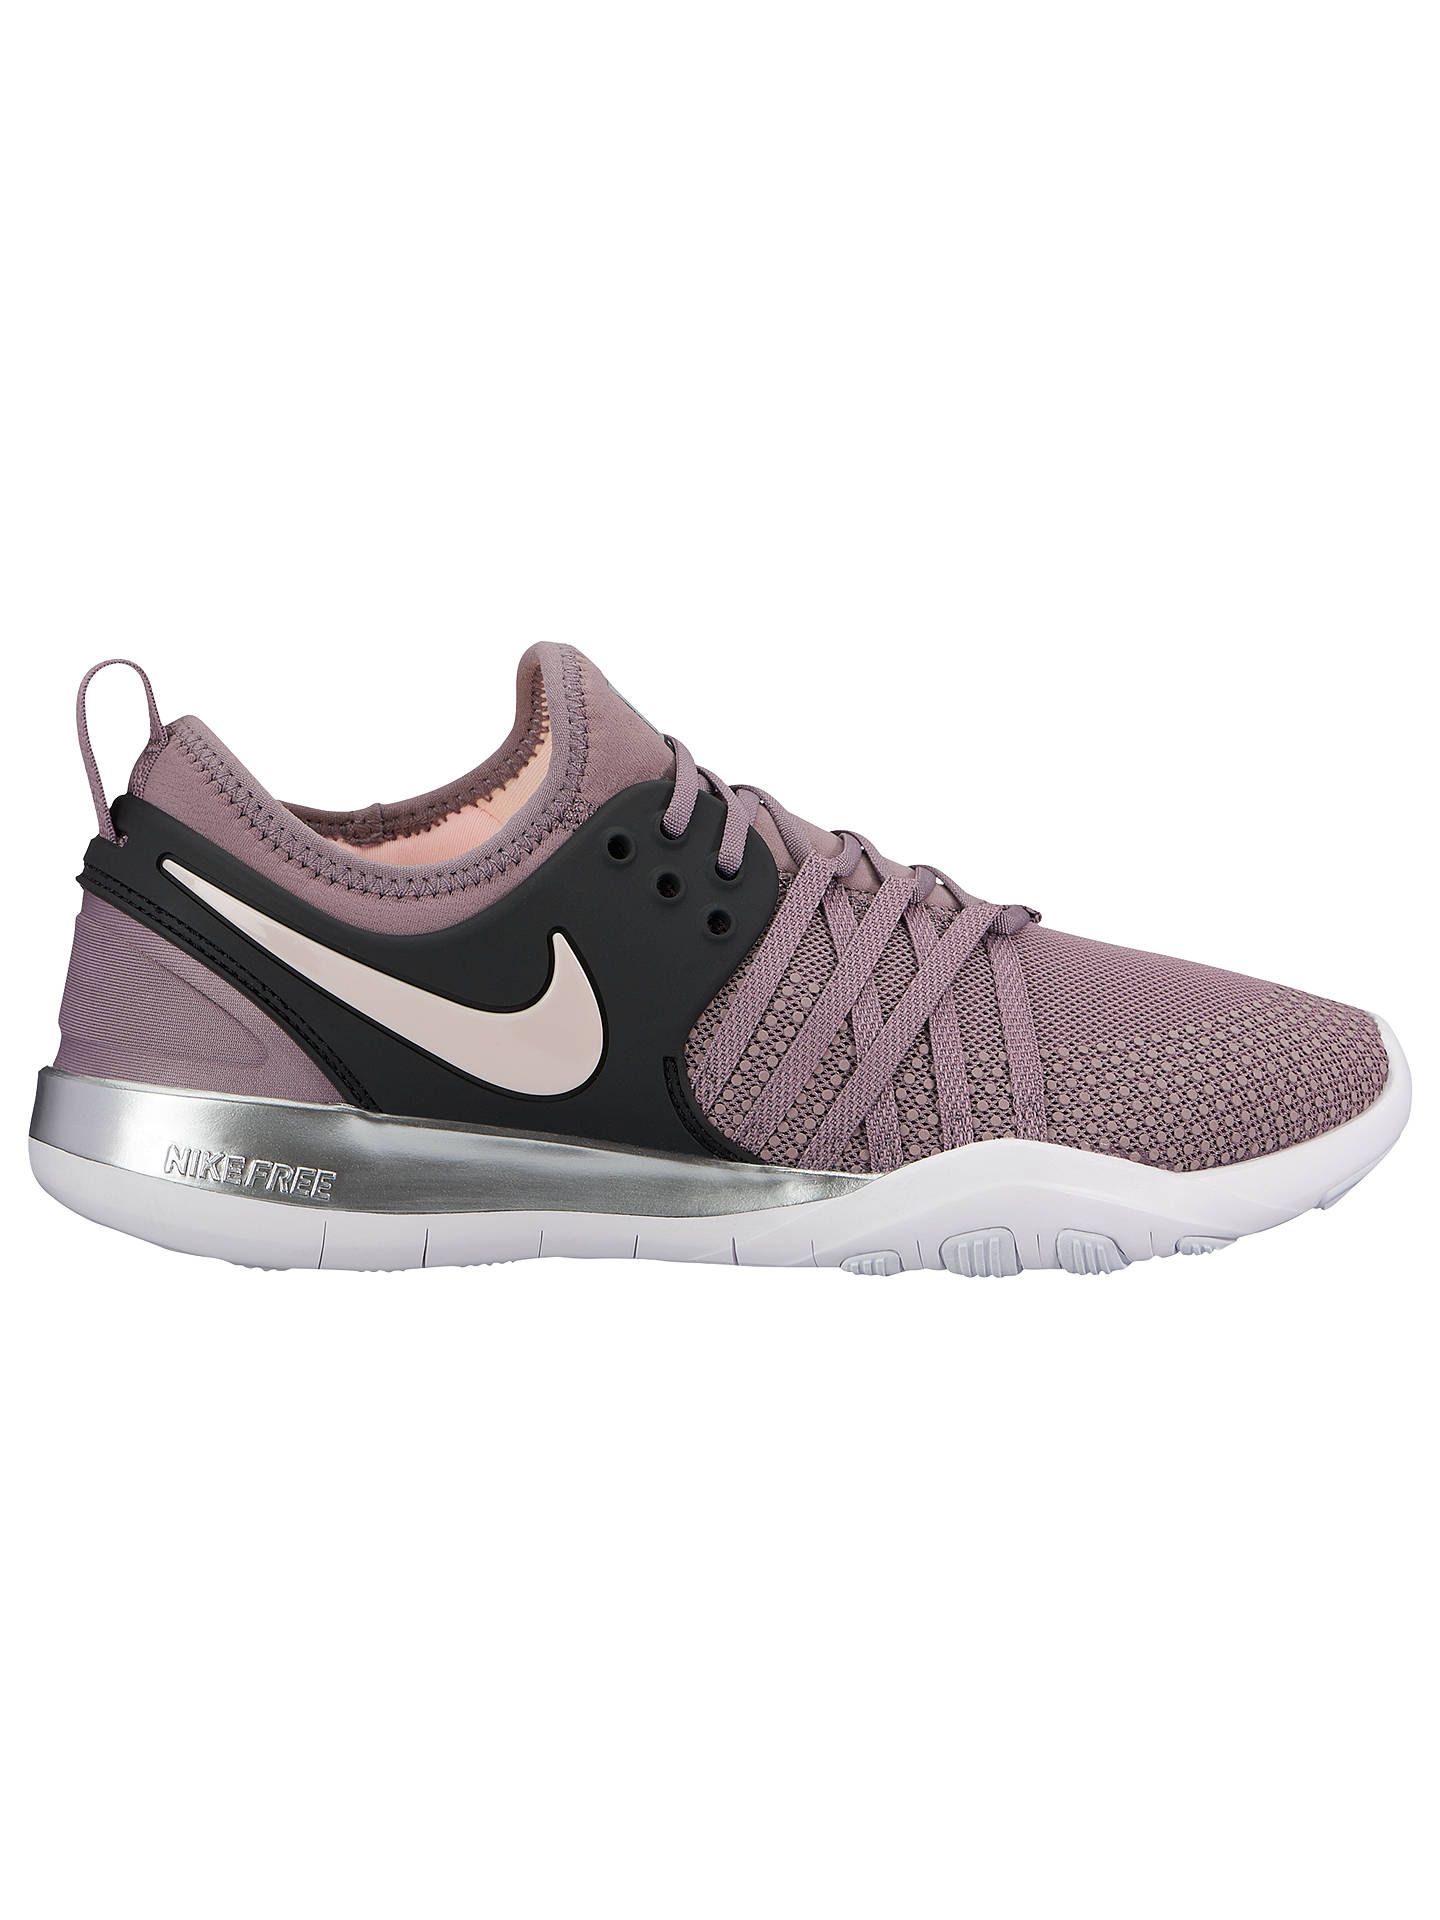 outlet store e365c e2b6a Buy Nike Free TR 7 Bionic Women s Training Shoes, Grey Black, 4 Online ...